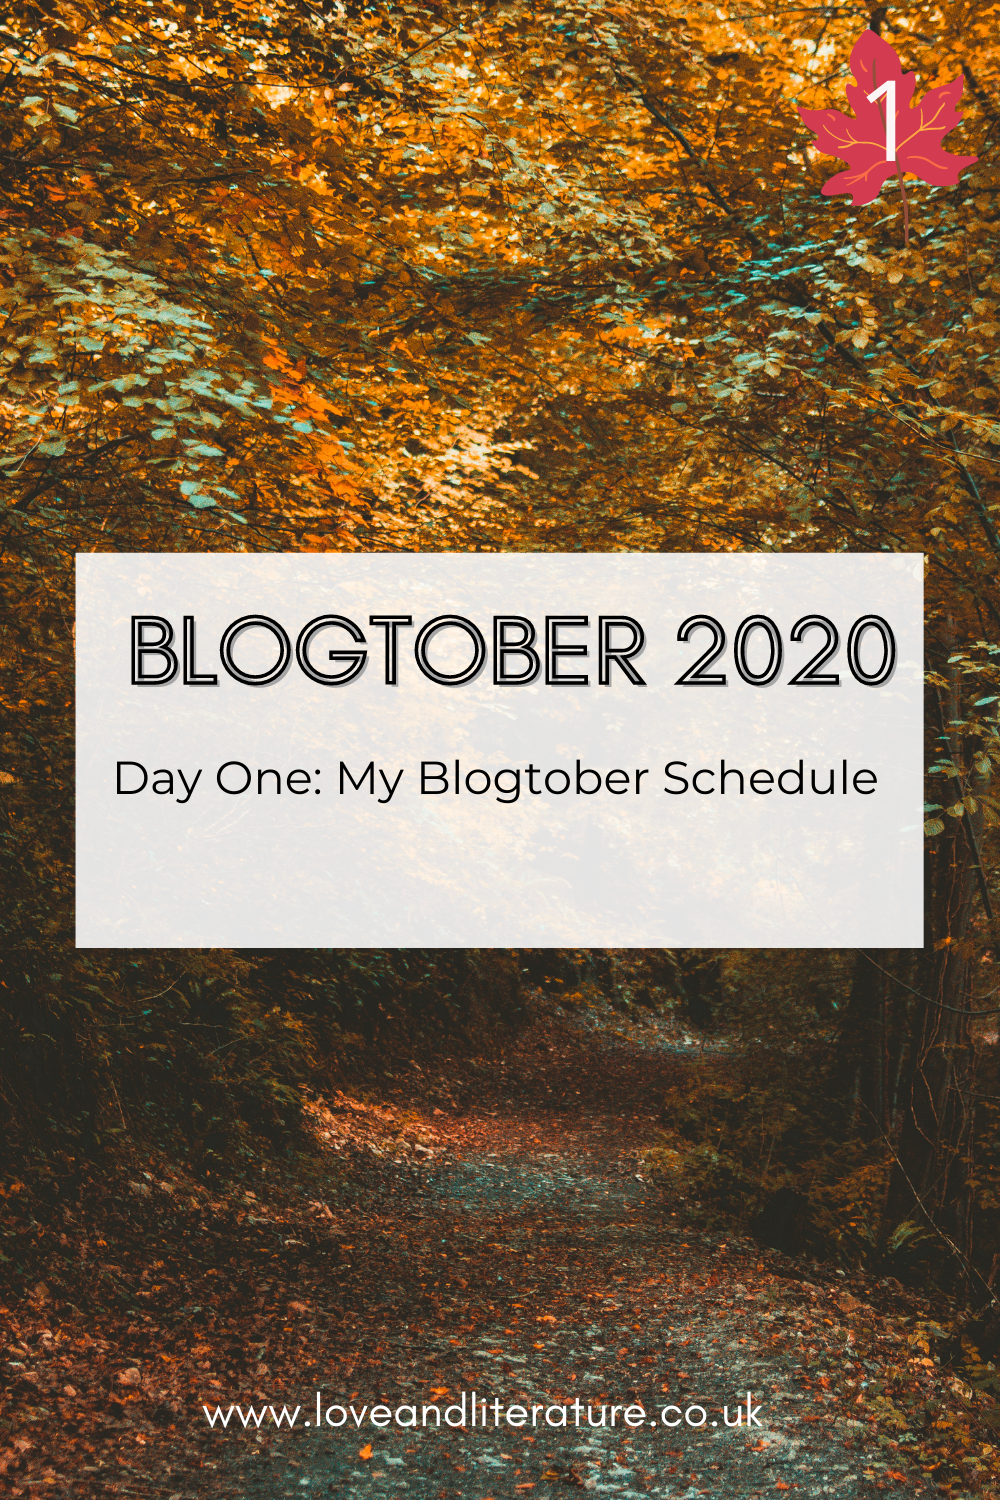 Blogtober Day One: My Blogtober Schedule